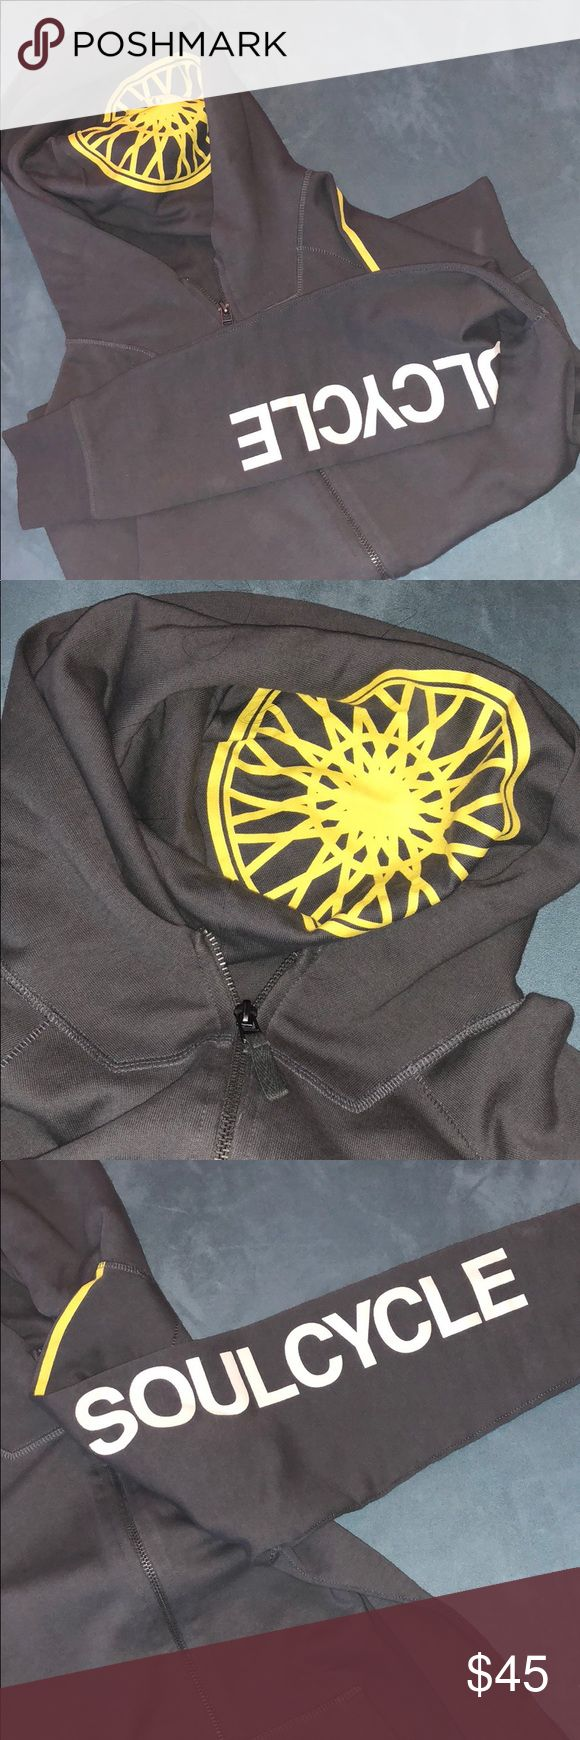 Women's SoulCycle zip up hoodie! Women's gray & yellow SoulCycle hoodie! Zips up the front with pockets. The bright yellow wheel logo is in the hood & the words SoulCycle in white down the left arm. soulcycle Sweaters